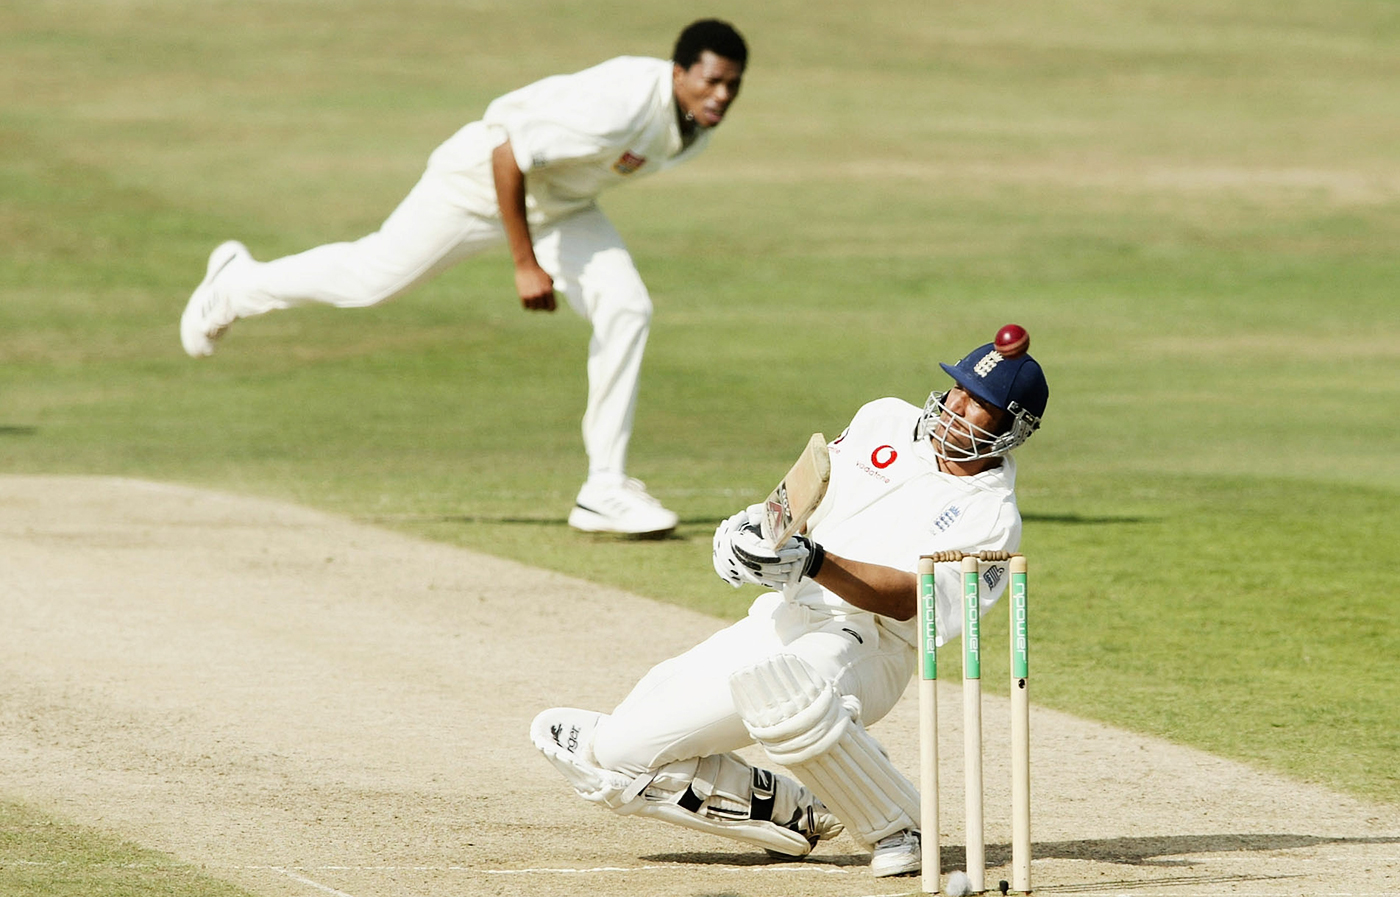 Mark Butcher ducks under a bouncer from Makhaya Ntini